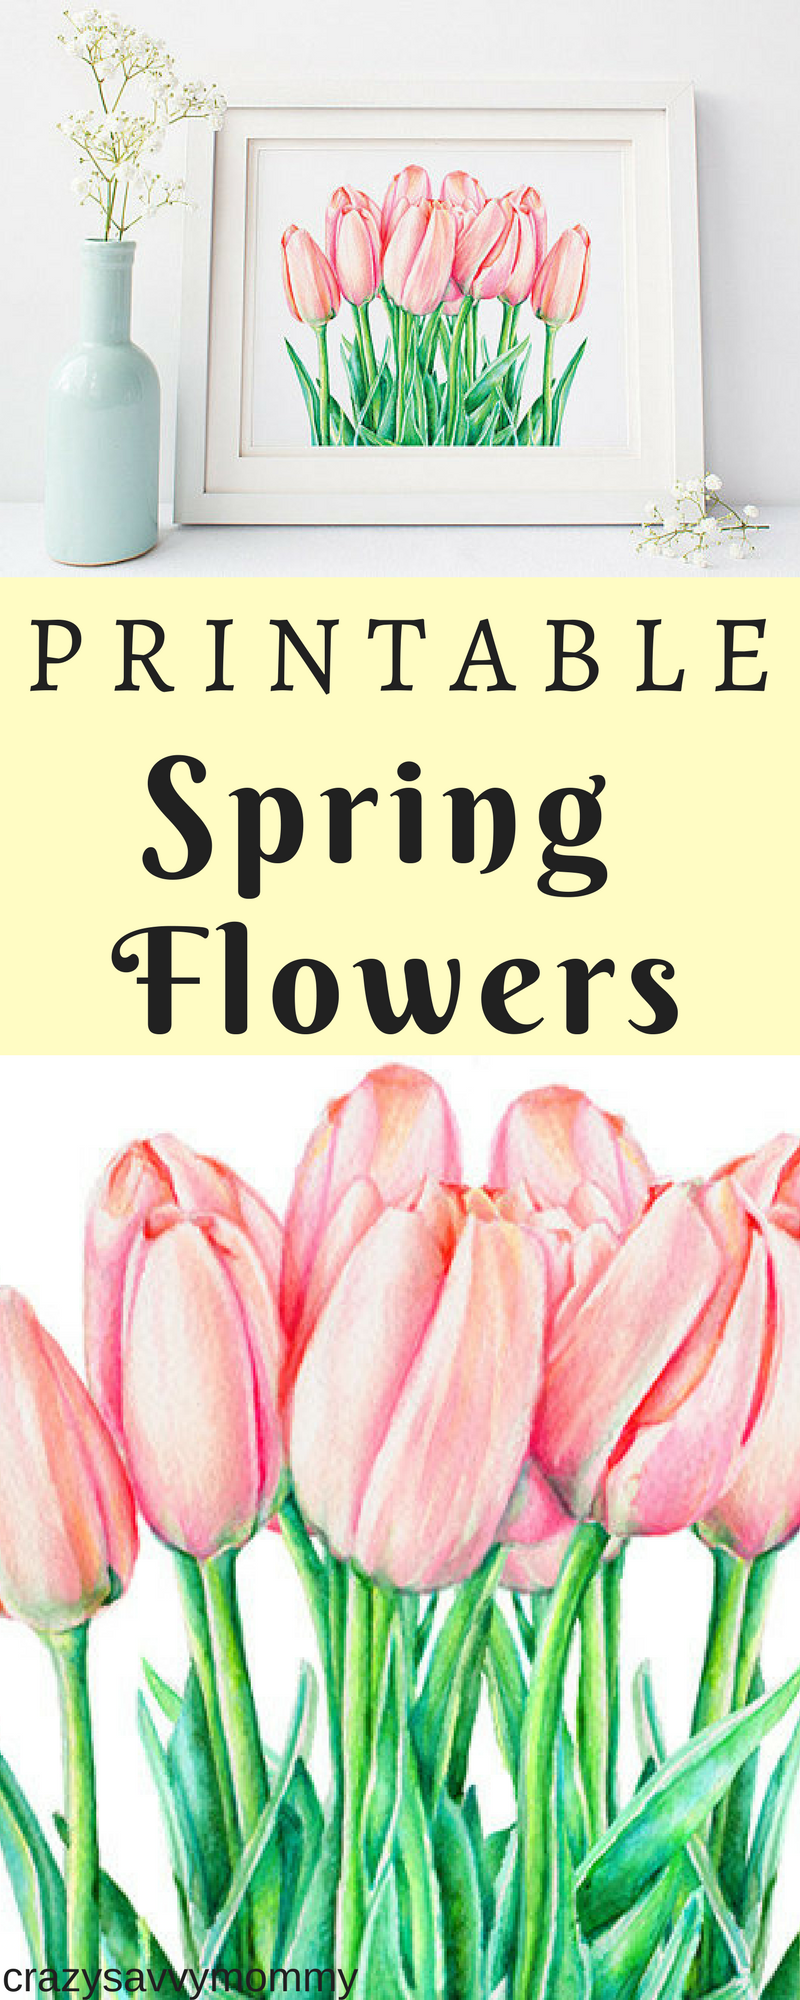 Only 500 Printable Spring Flowers This Is An Original